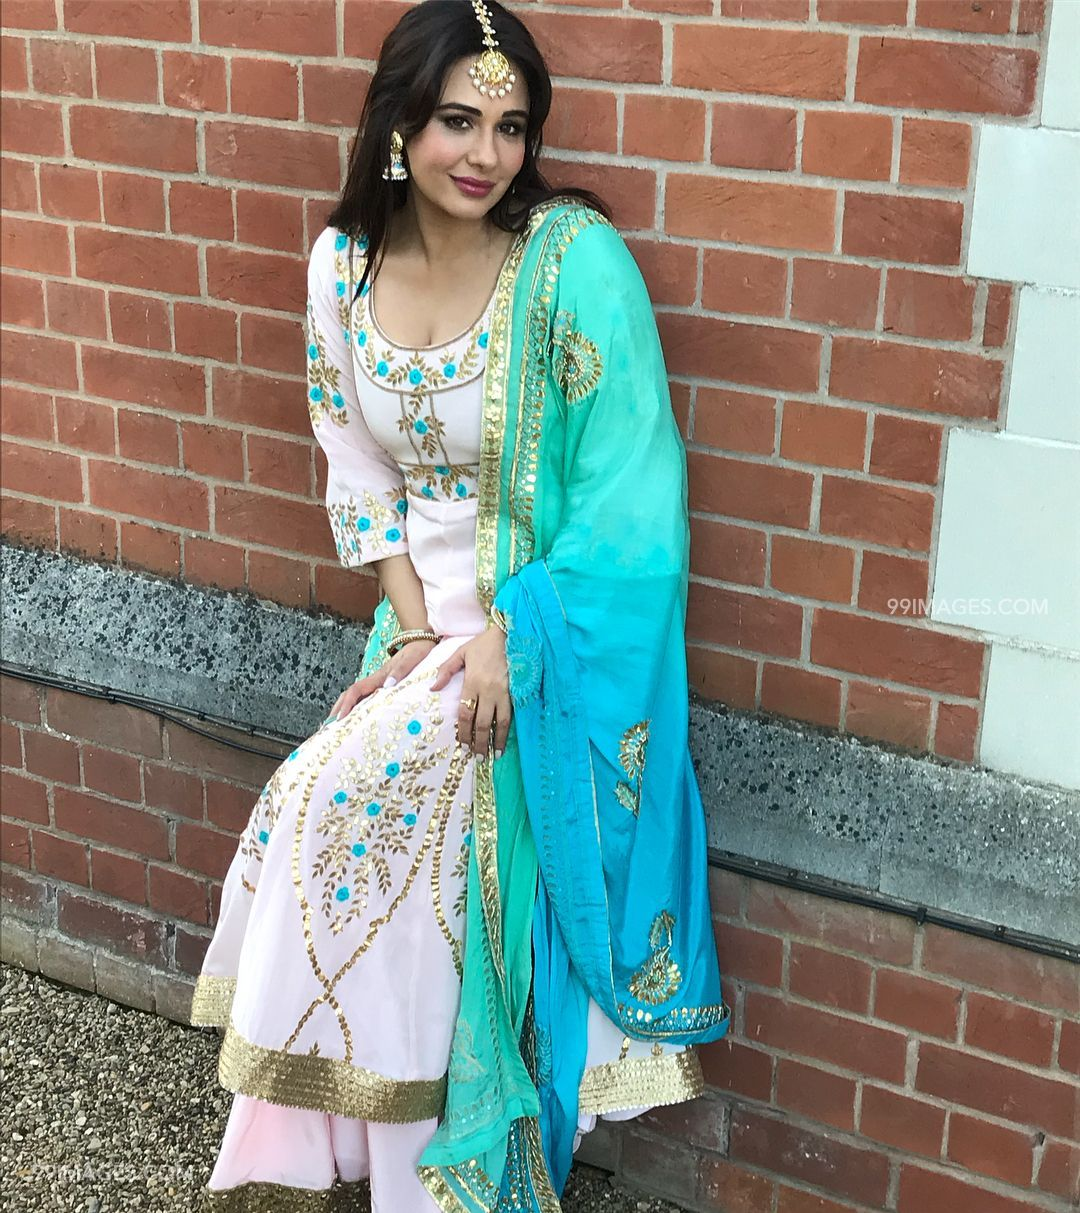 Mandy Takhar Beautiful HD Photos & Mobile Wallpapers HD (Android/iPhone) (1080p) (34099) - Mandy Takhar